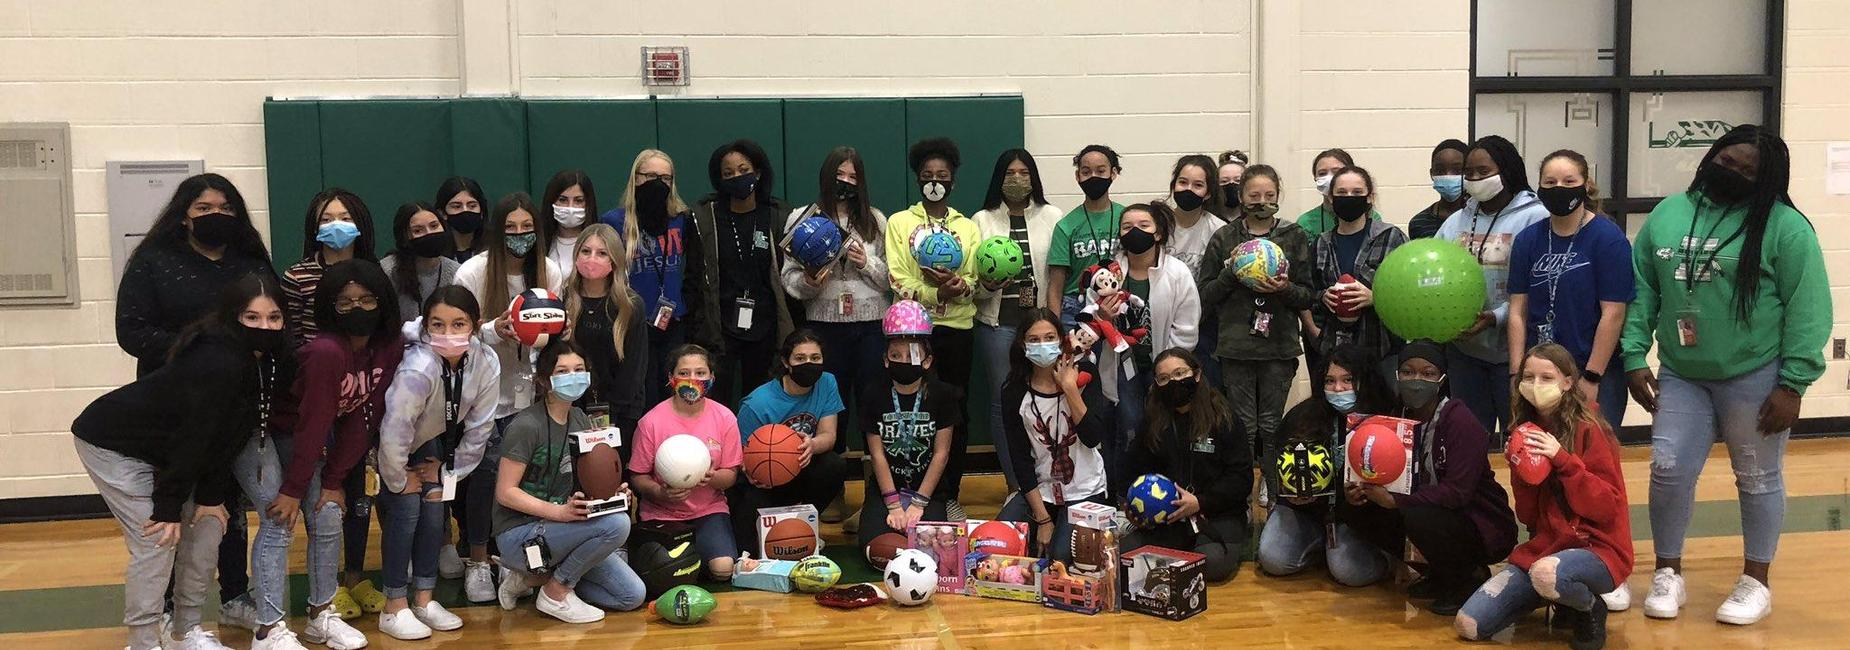 large group of female athletes holding balls to be donated to those in need